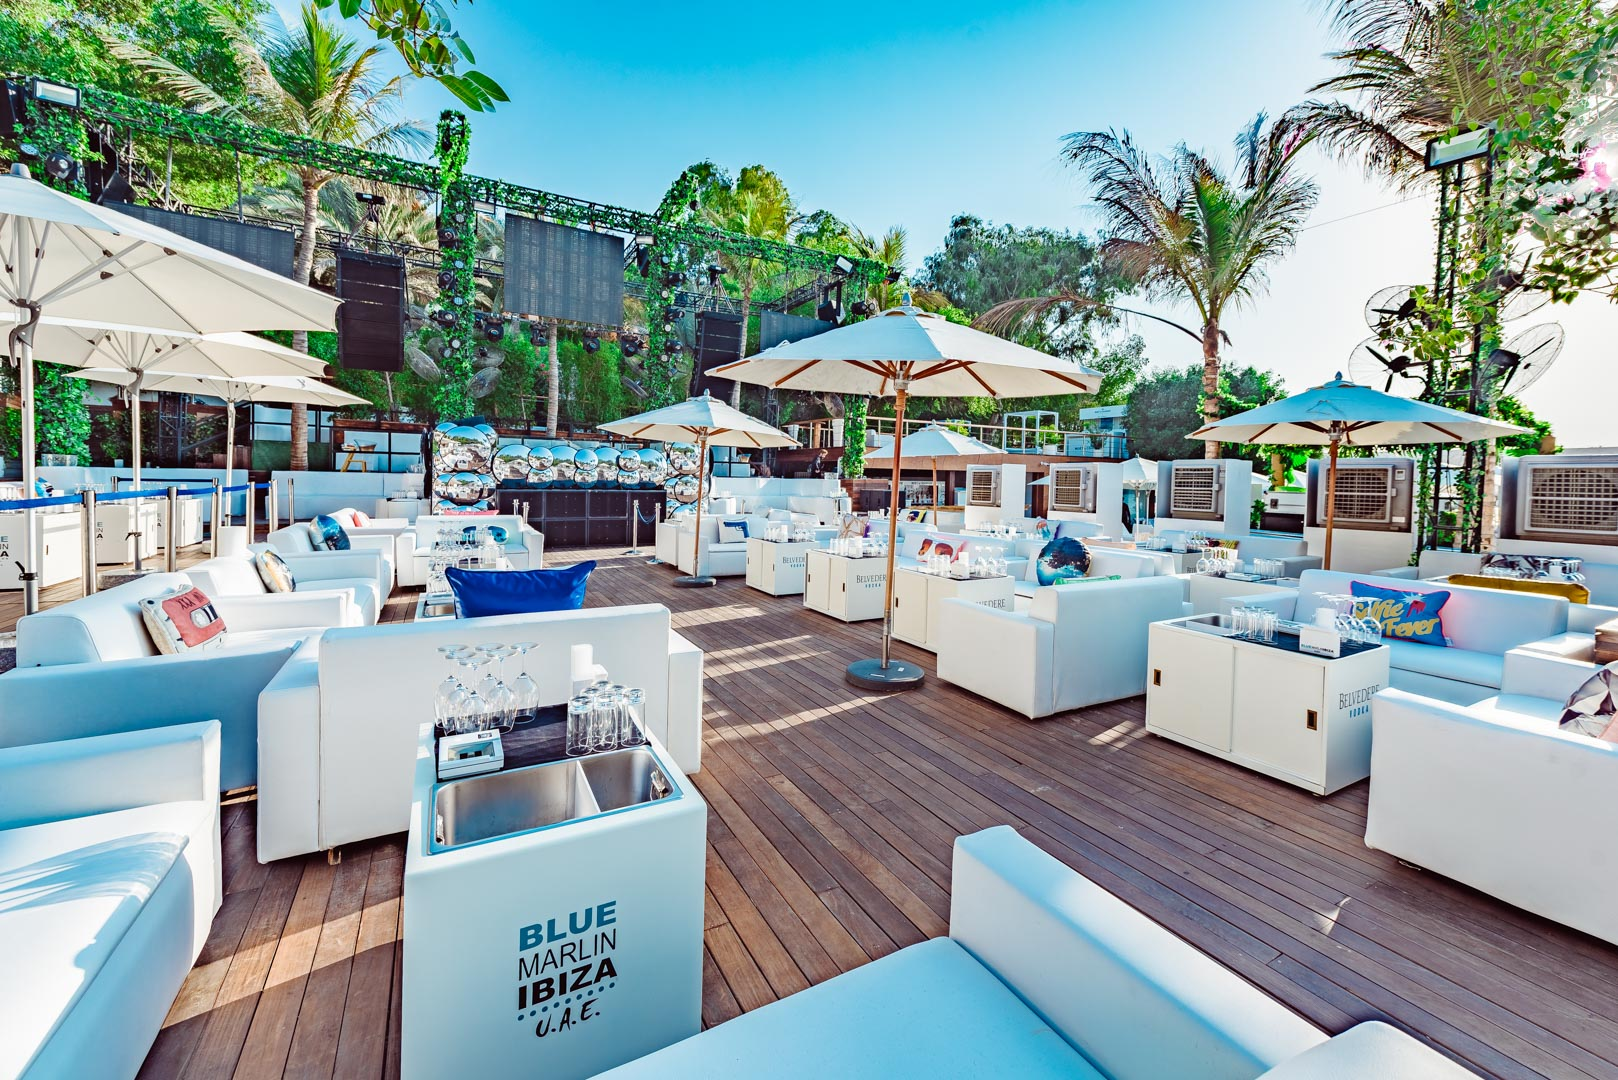 Blue marlin Ibiza UAE exterior and interior